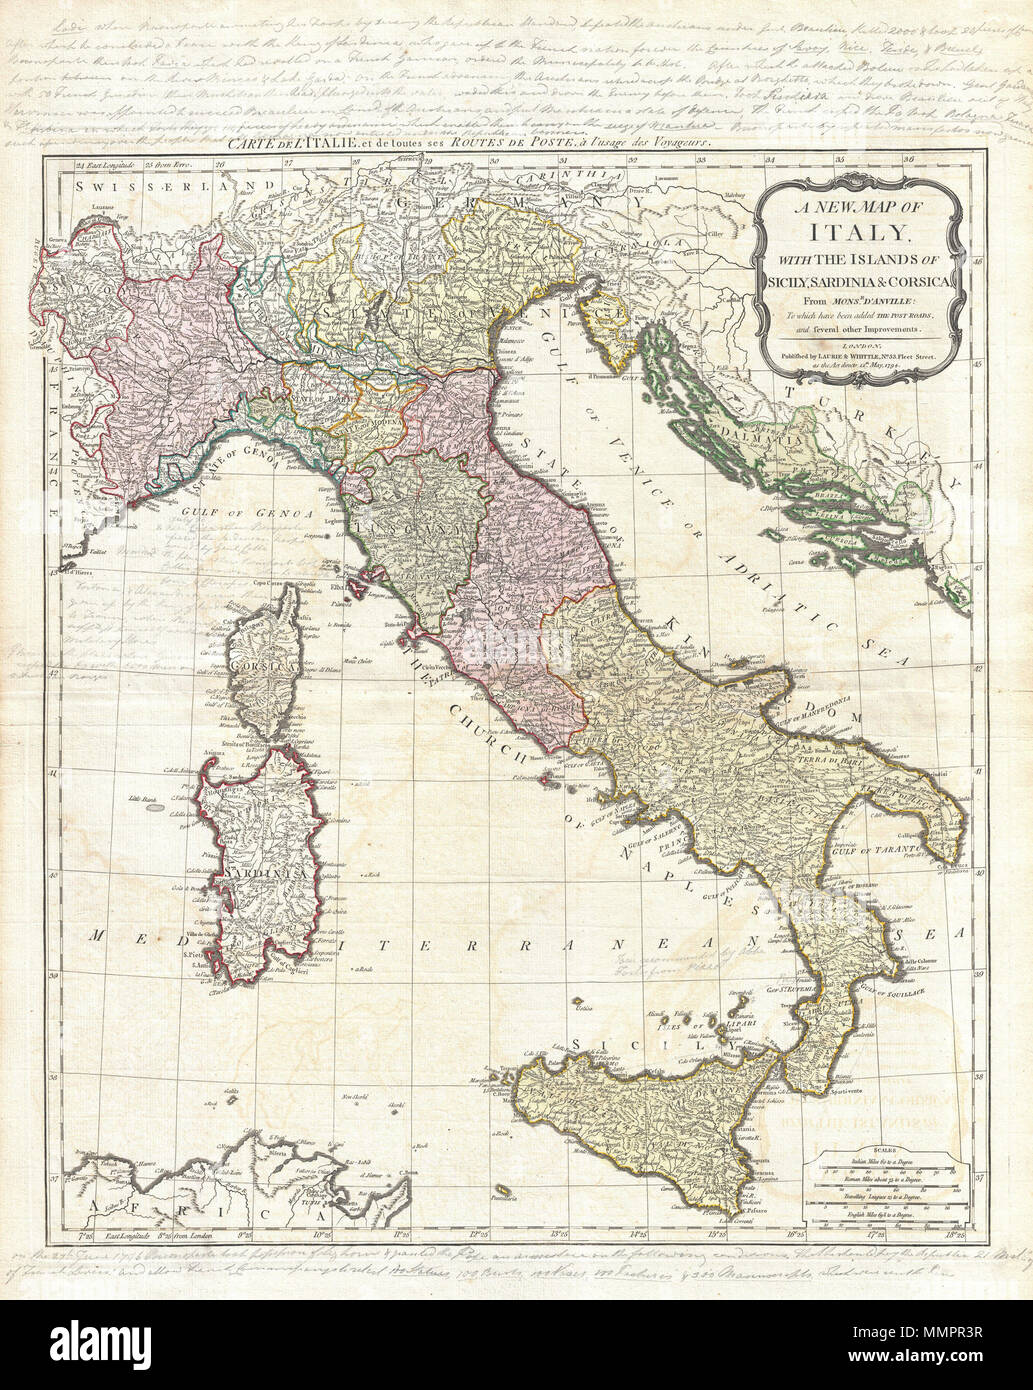 Map Of Italy With Towns.English An Rare And Beautiful 1794 Map Of Italy By J B B D